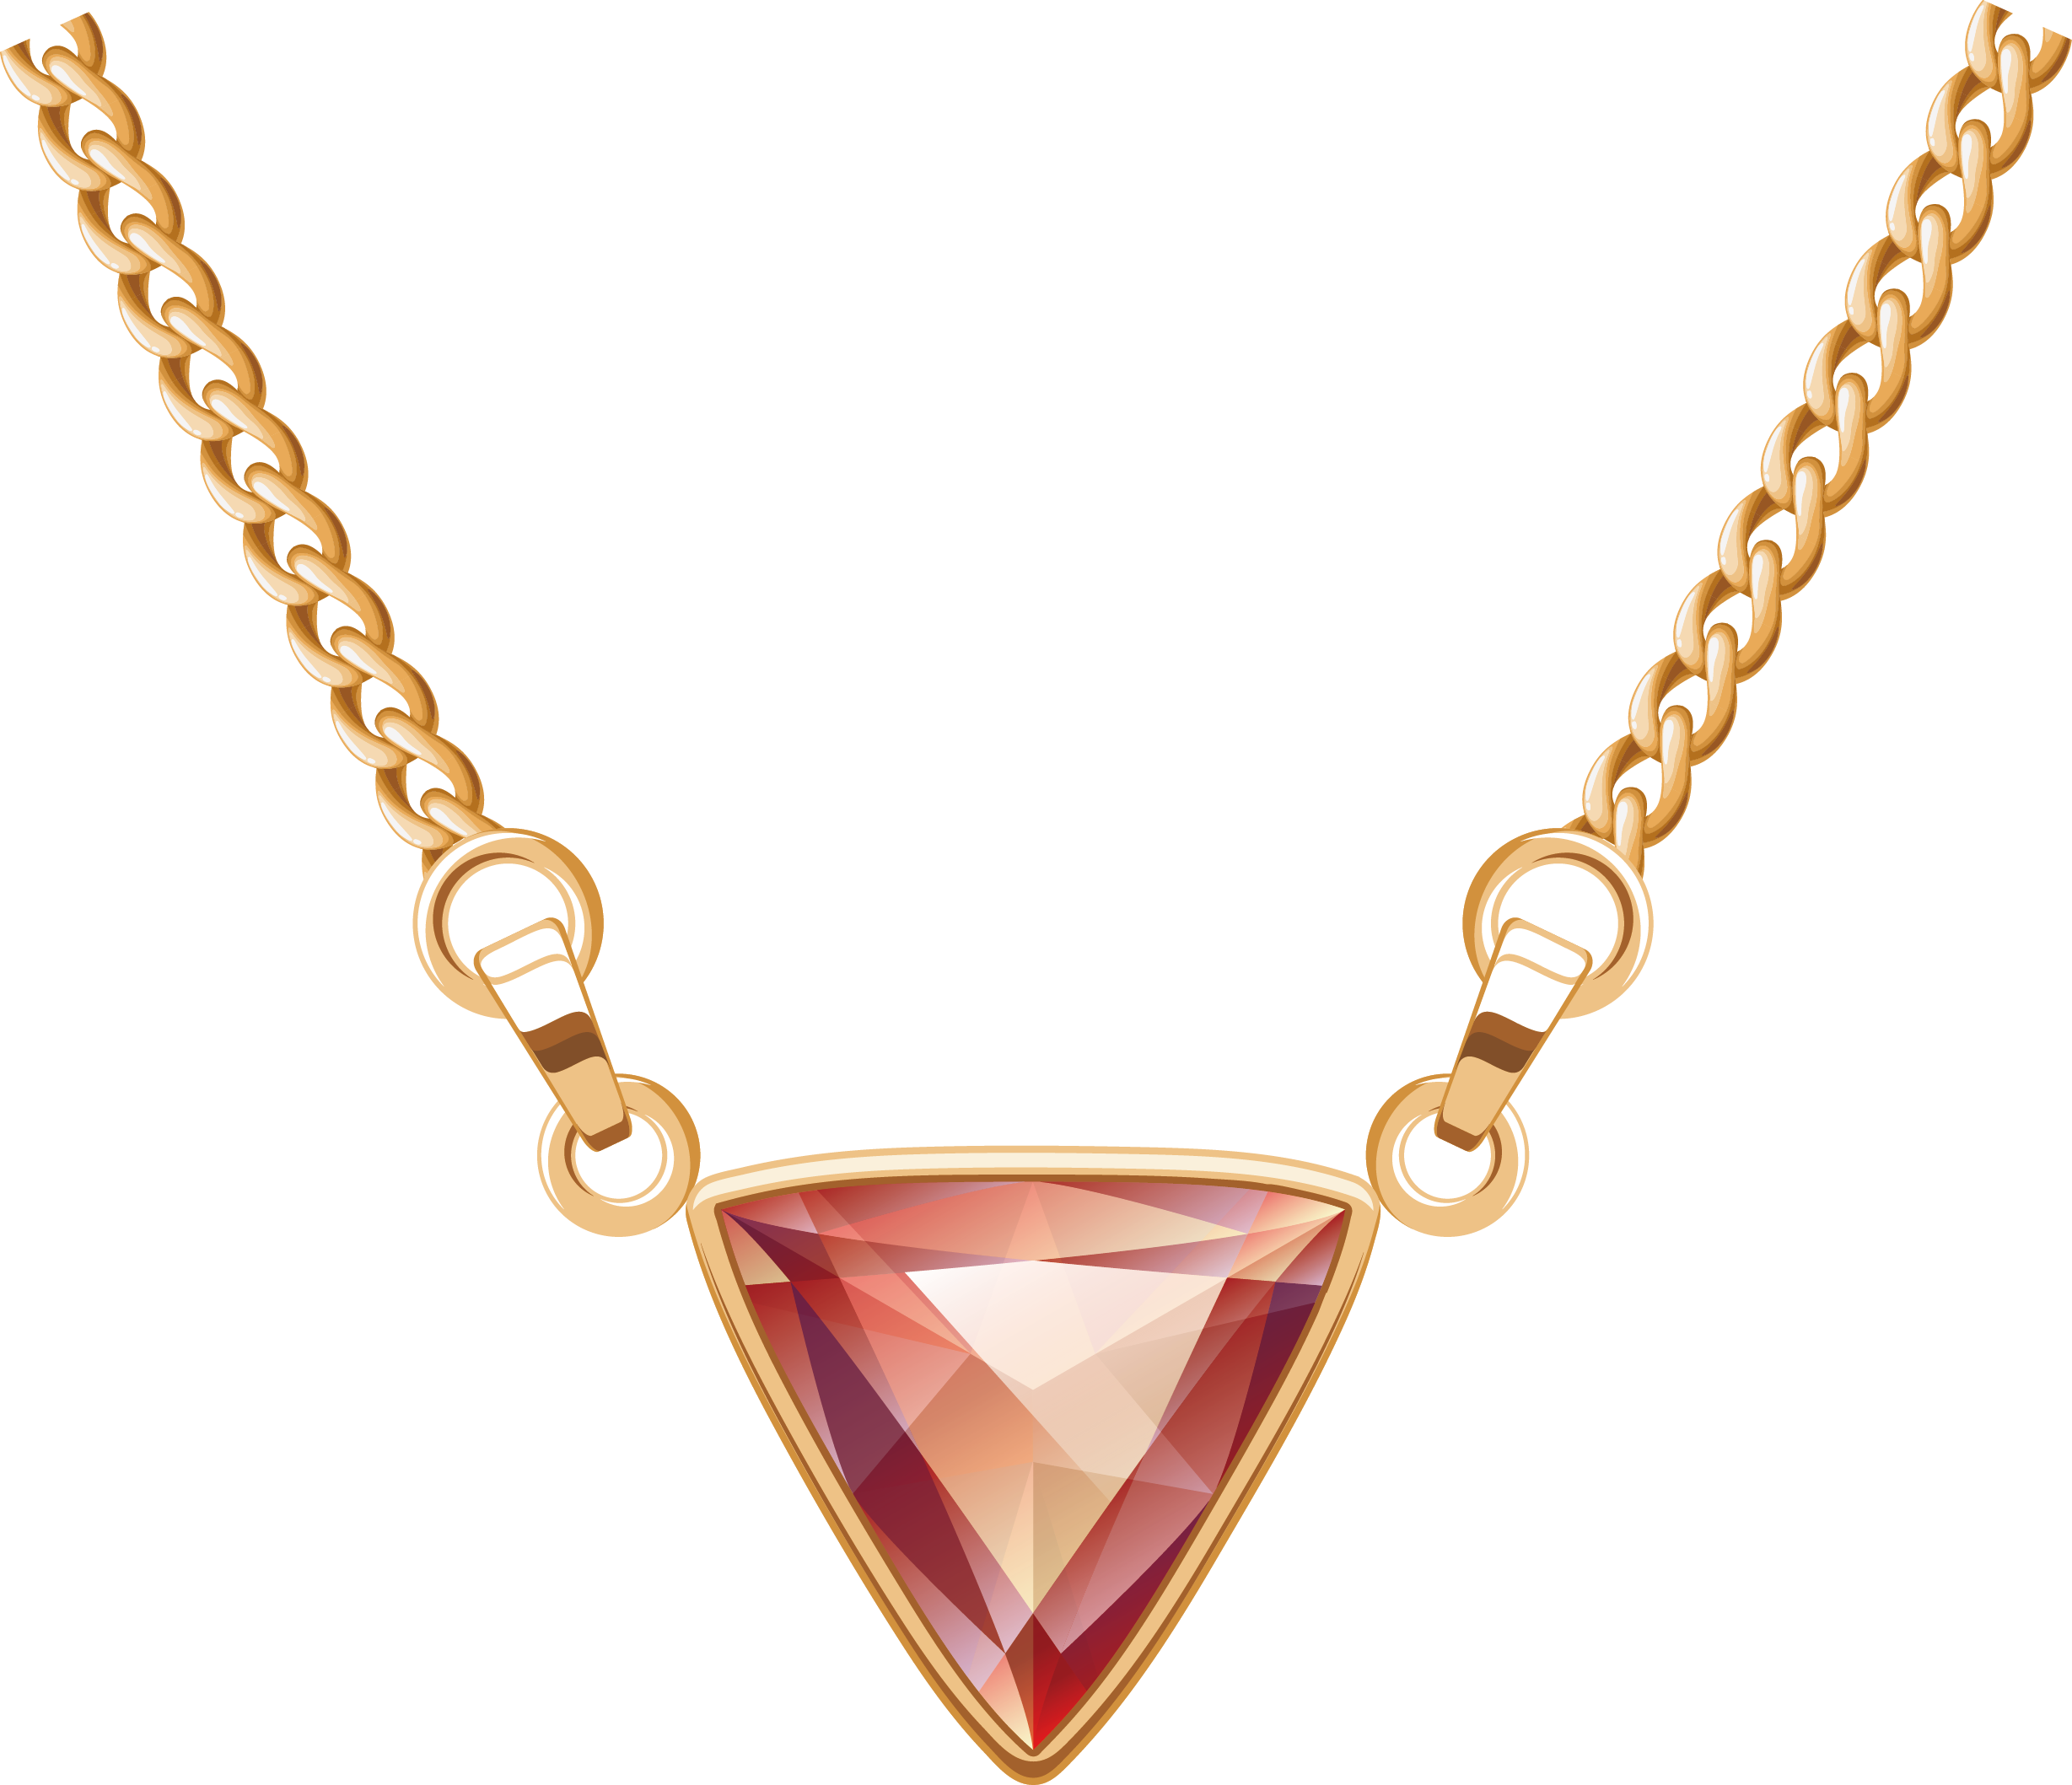 necklace png images are download crazypngm crazy png images download #29345